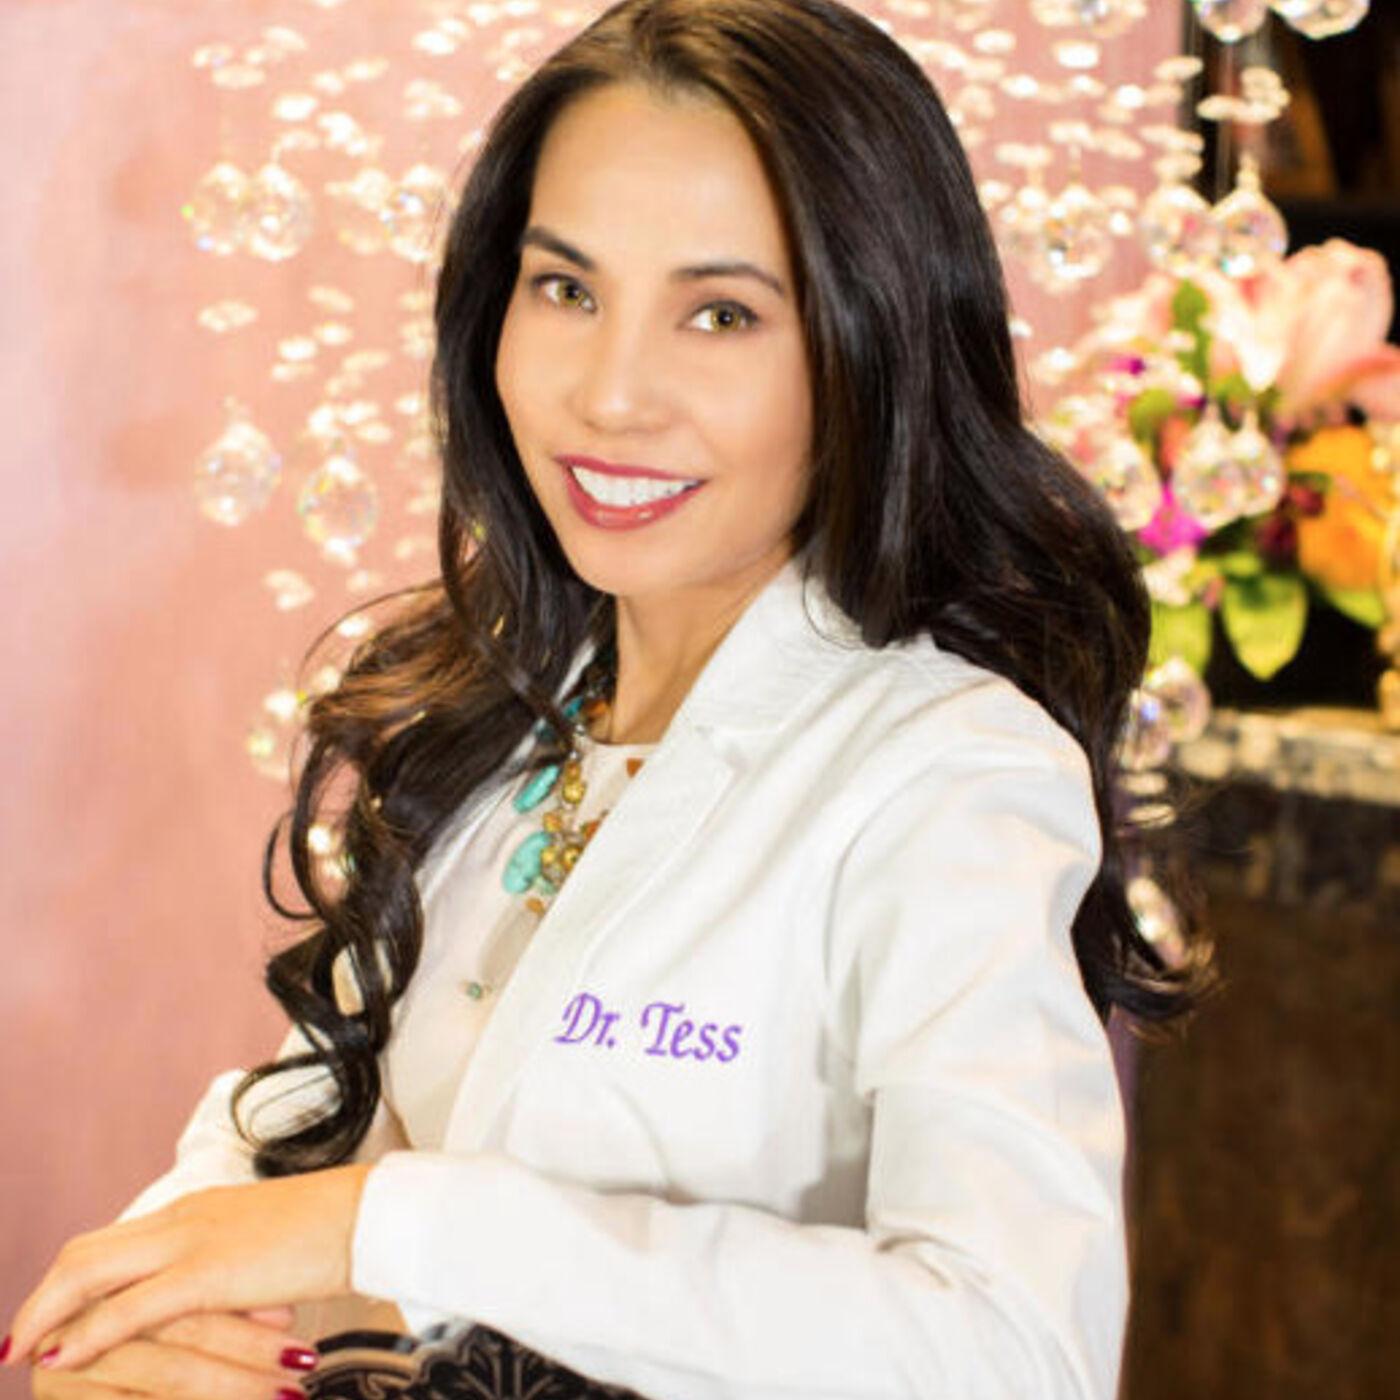 Regenerate yourself, and learn beauty hacks with America's Favorite Dermatologist, Dr. Tess!